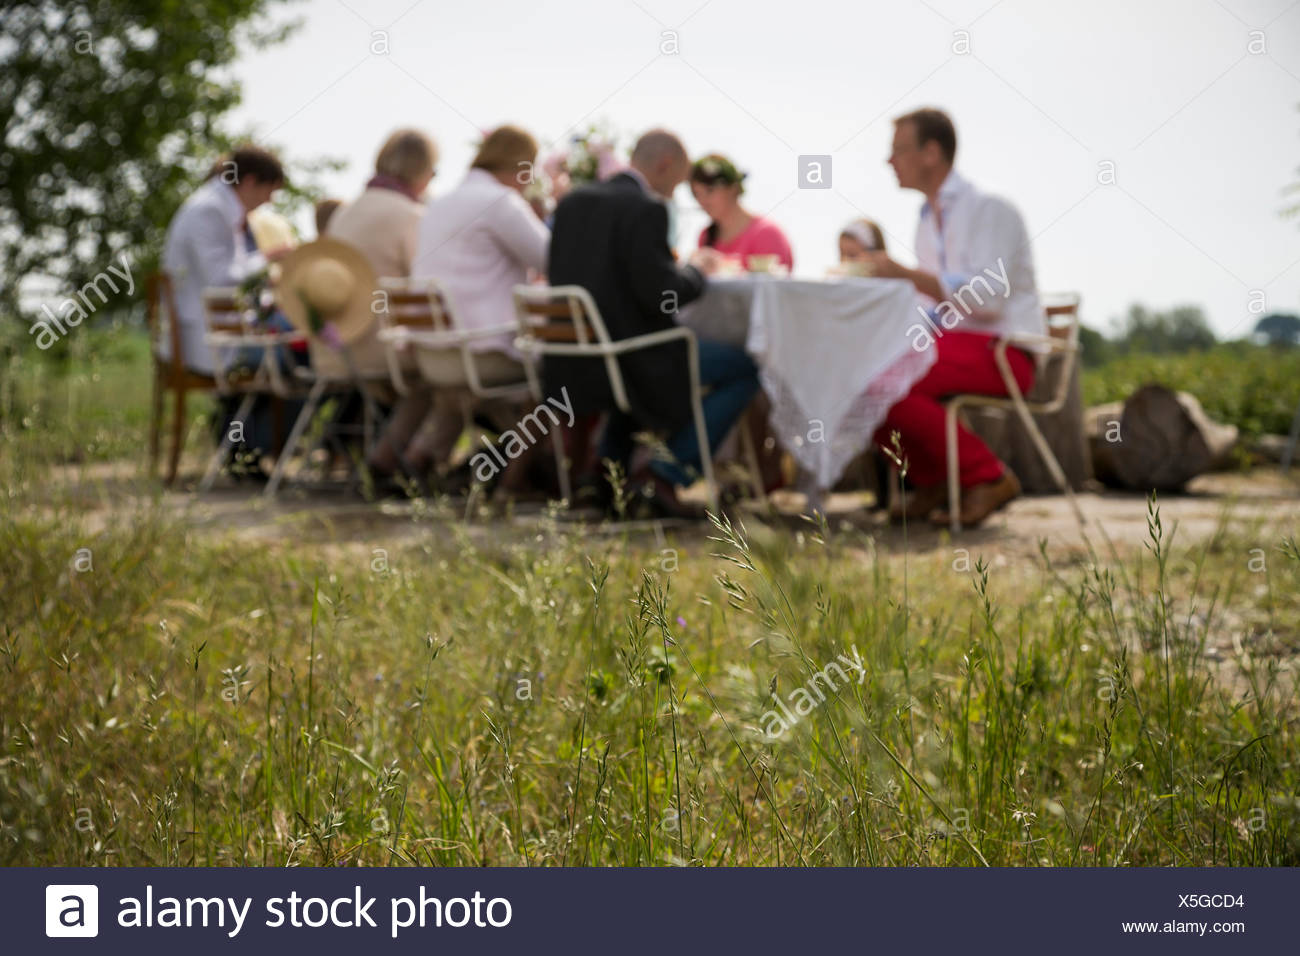 Sweden, Skane, Family with one child (8-9) during midsummer celebrations - Stock Image